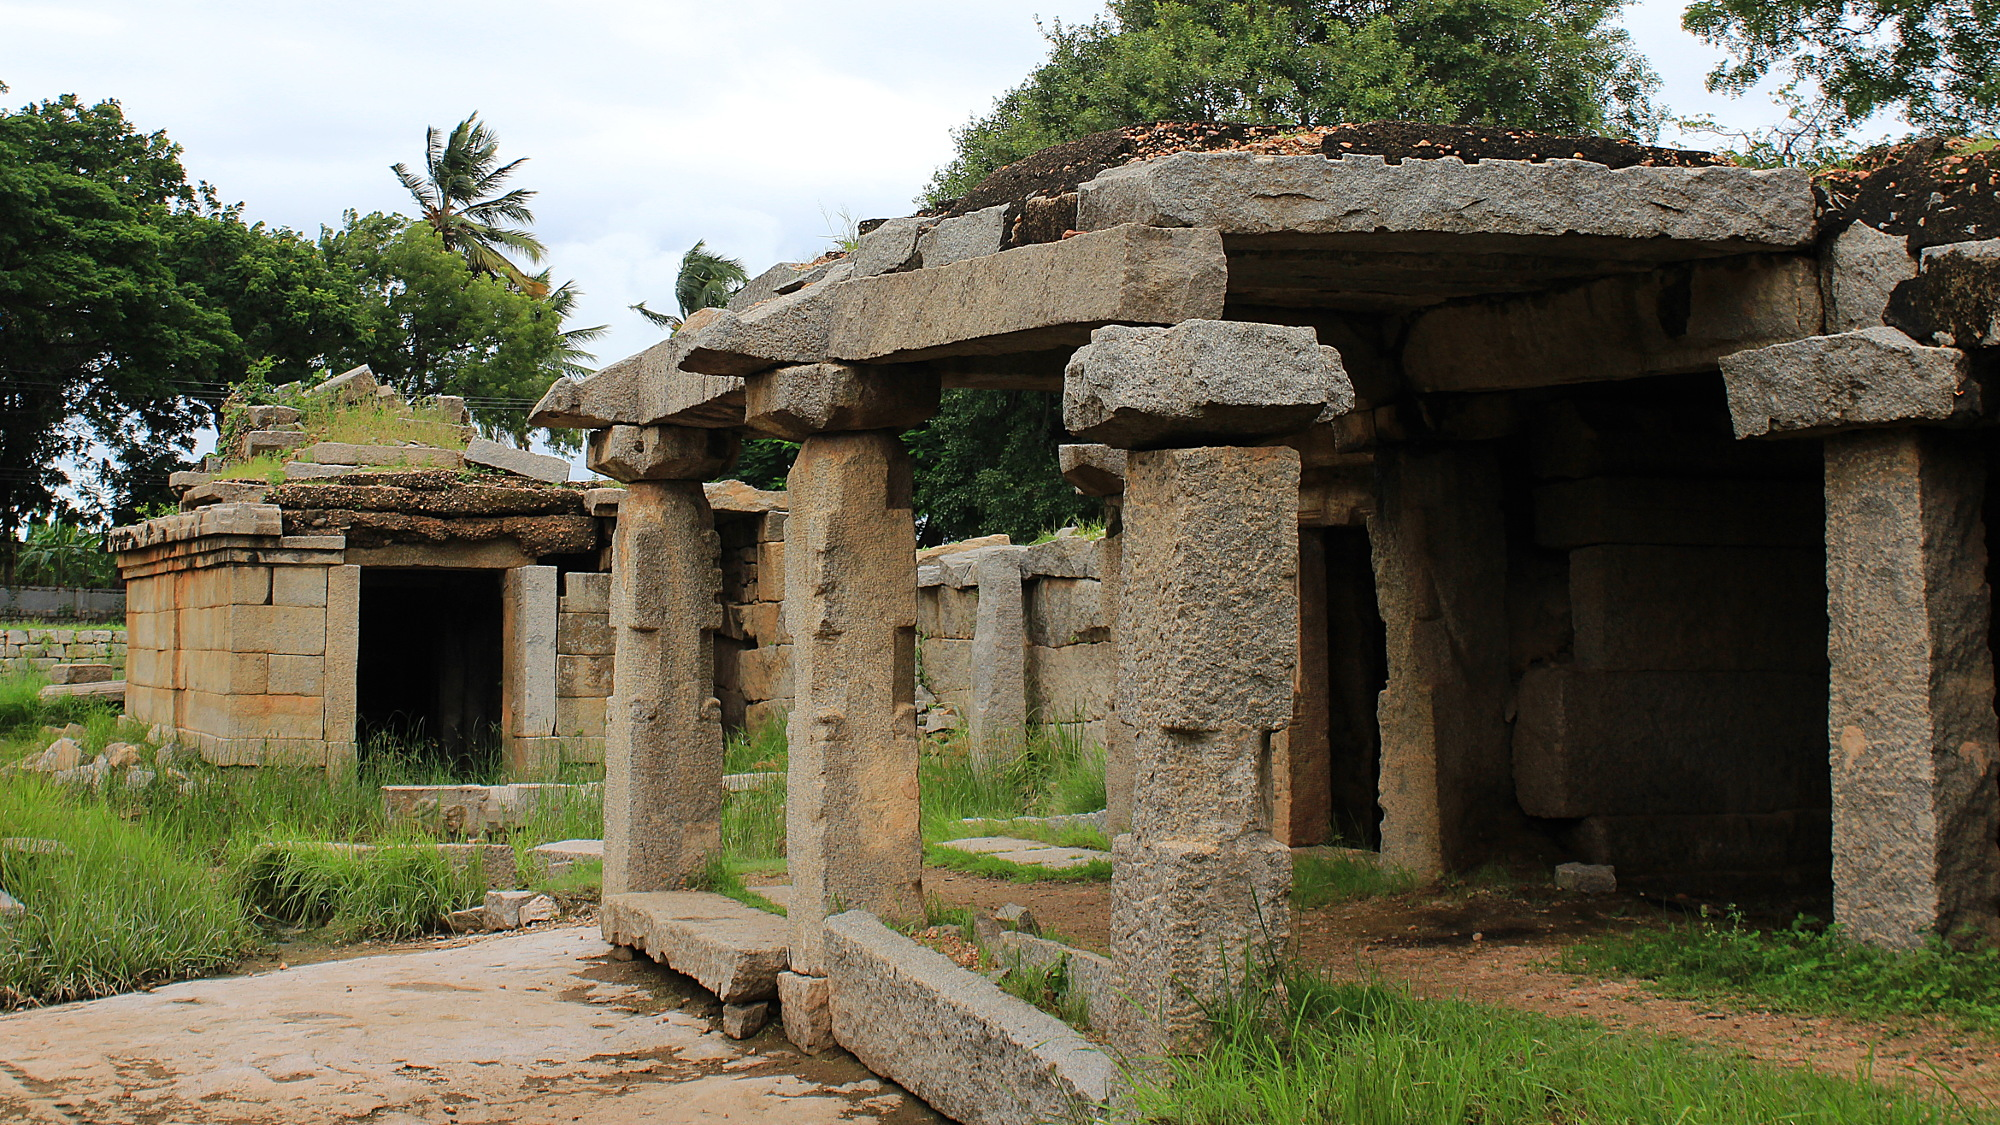 A partly outgrown ruin in Hampi.